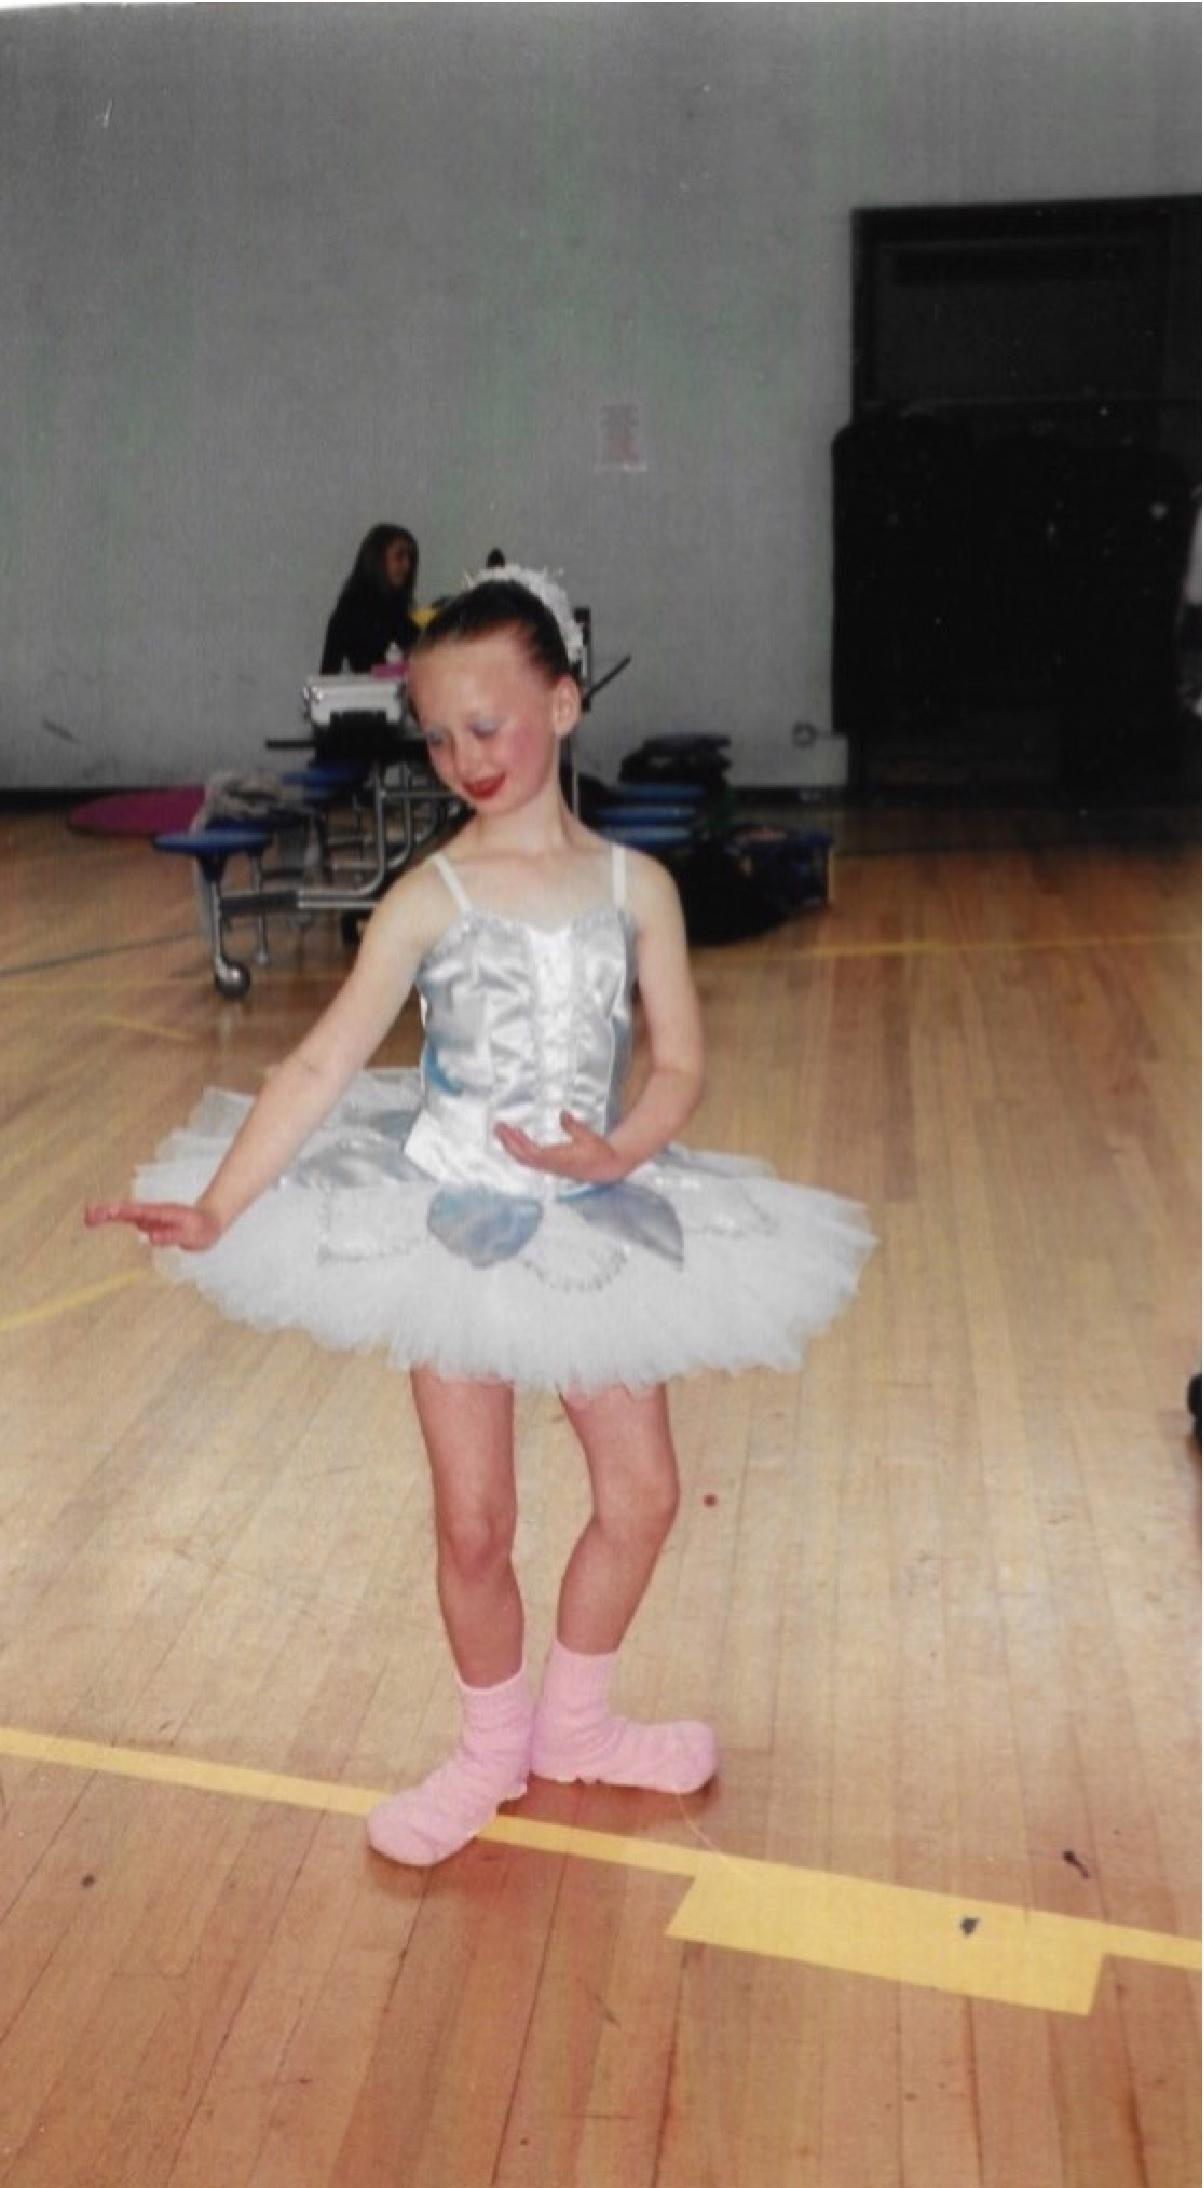 younger pippa backstage dancing, wearing blue tutu and silly pink socks over ballet shoes